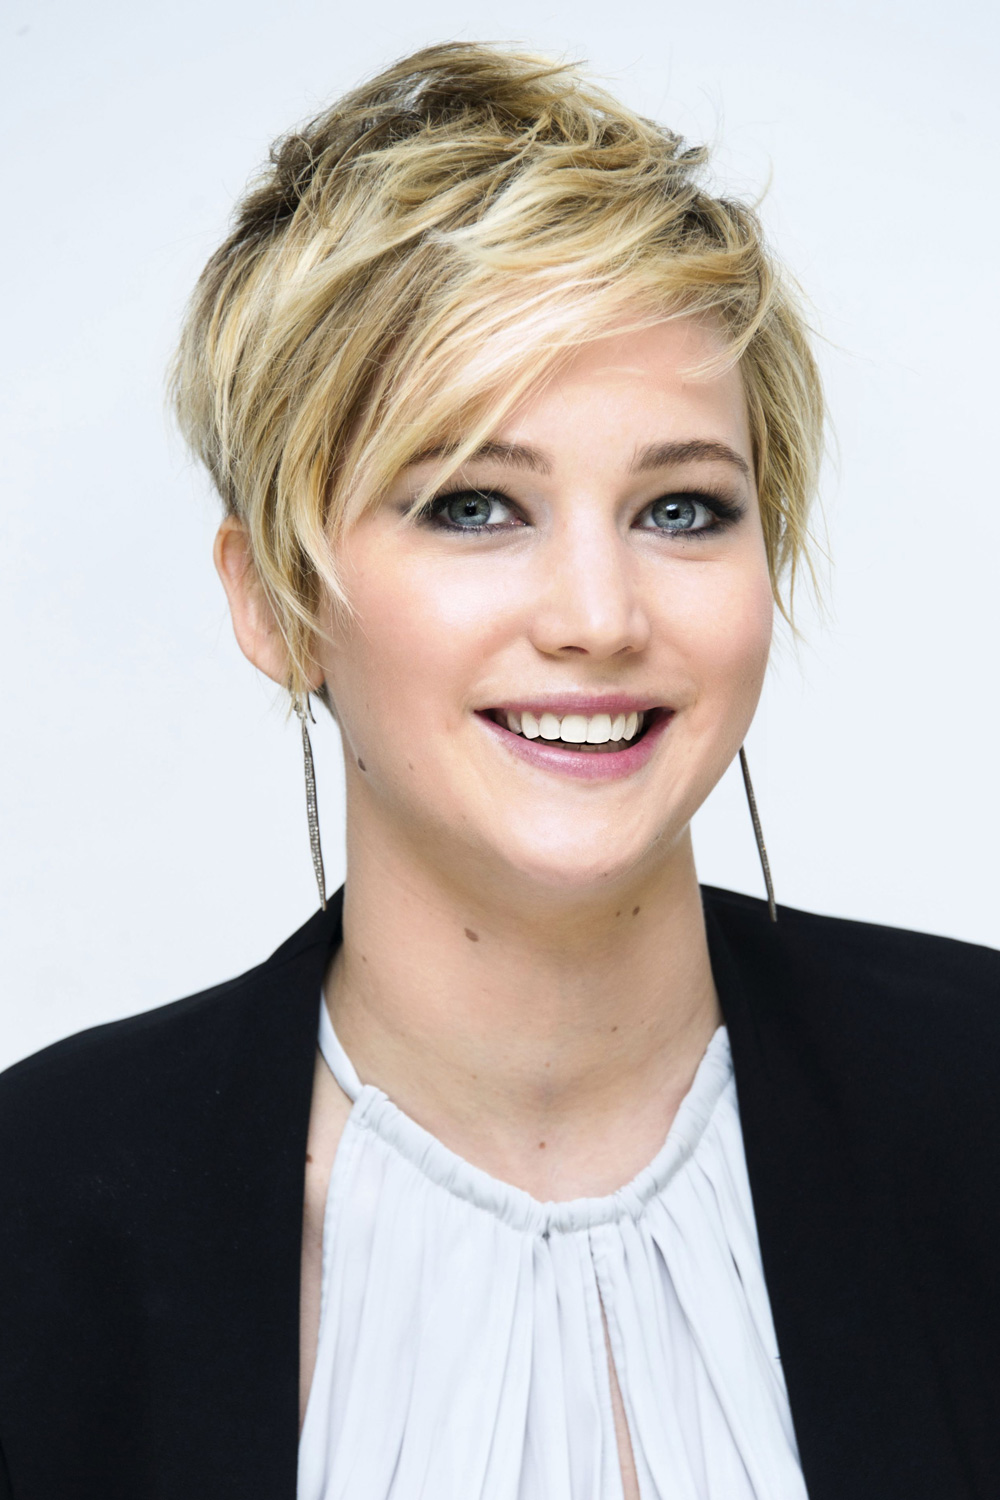 Short hairstyles for fine hair beautiful hairstyles